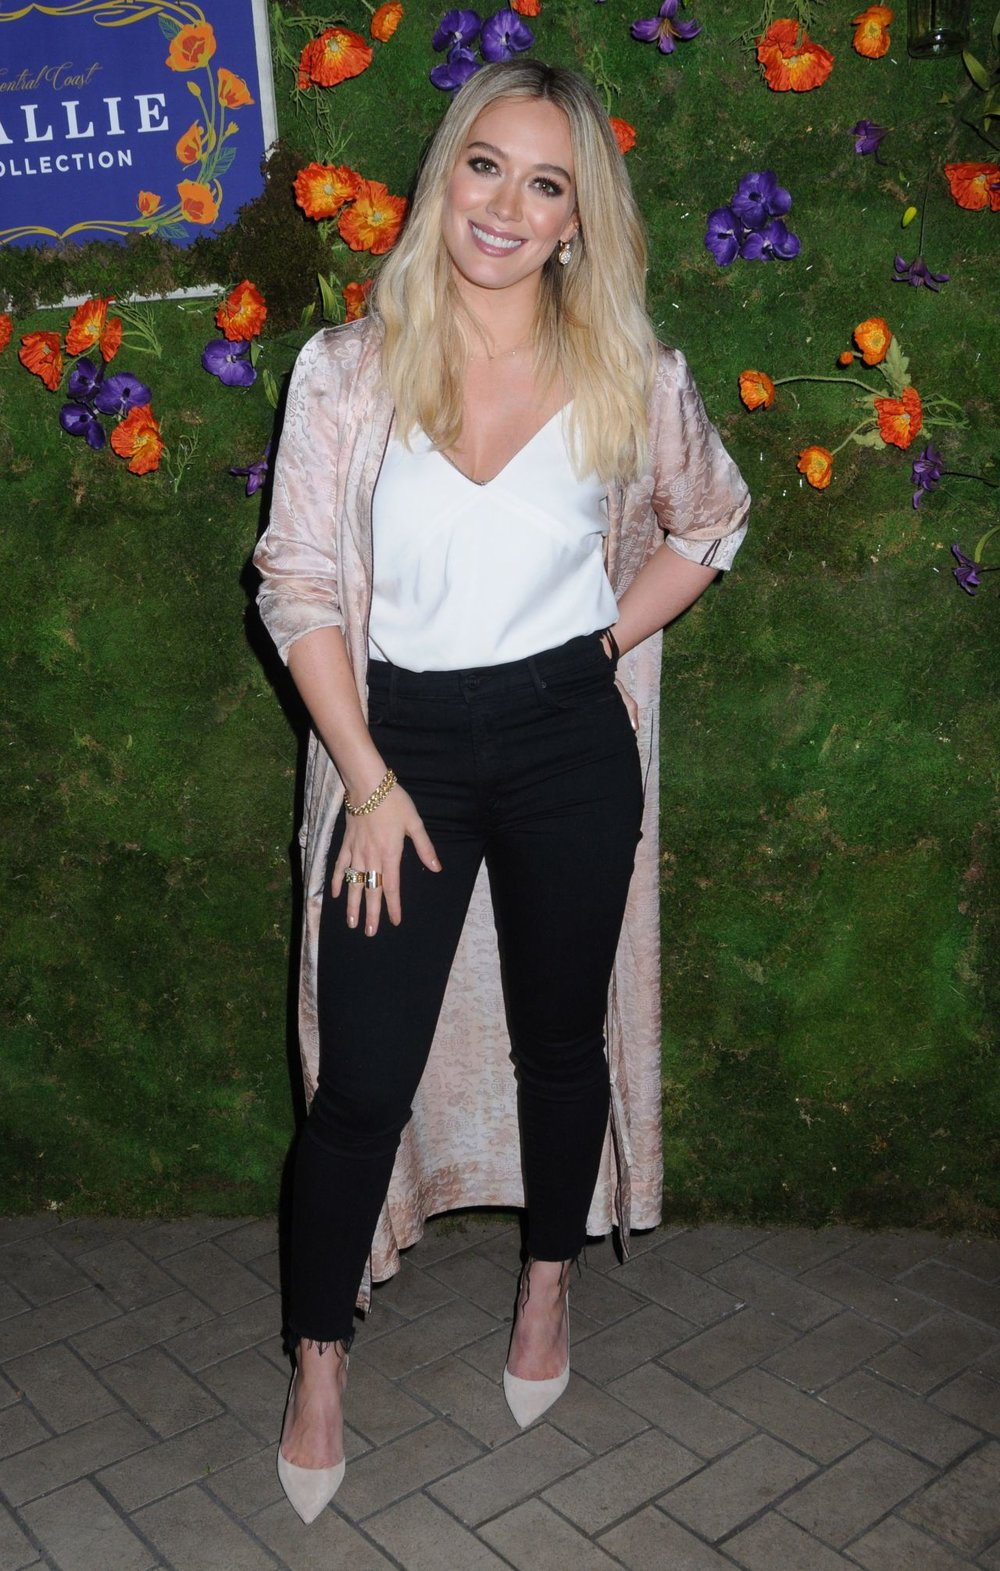 hilary-duff-launch-of-callie-collection-wines-in-the-north-cabana-at-la-sirena-in-nyc-3-7-2017-1.jpg